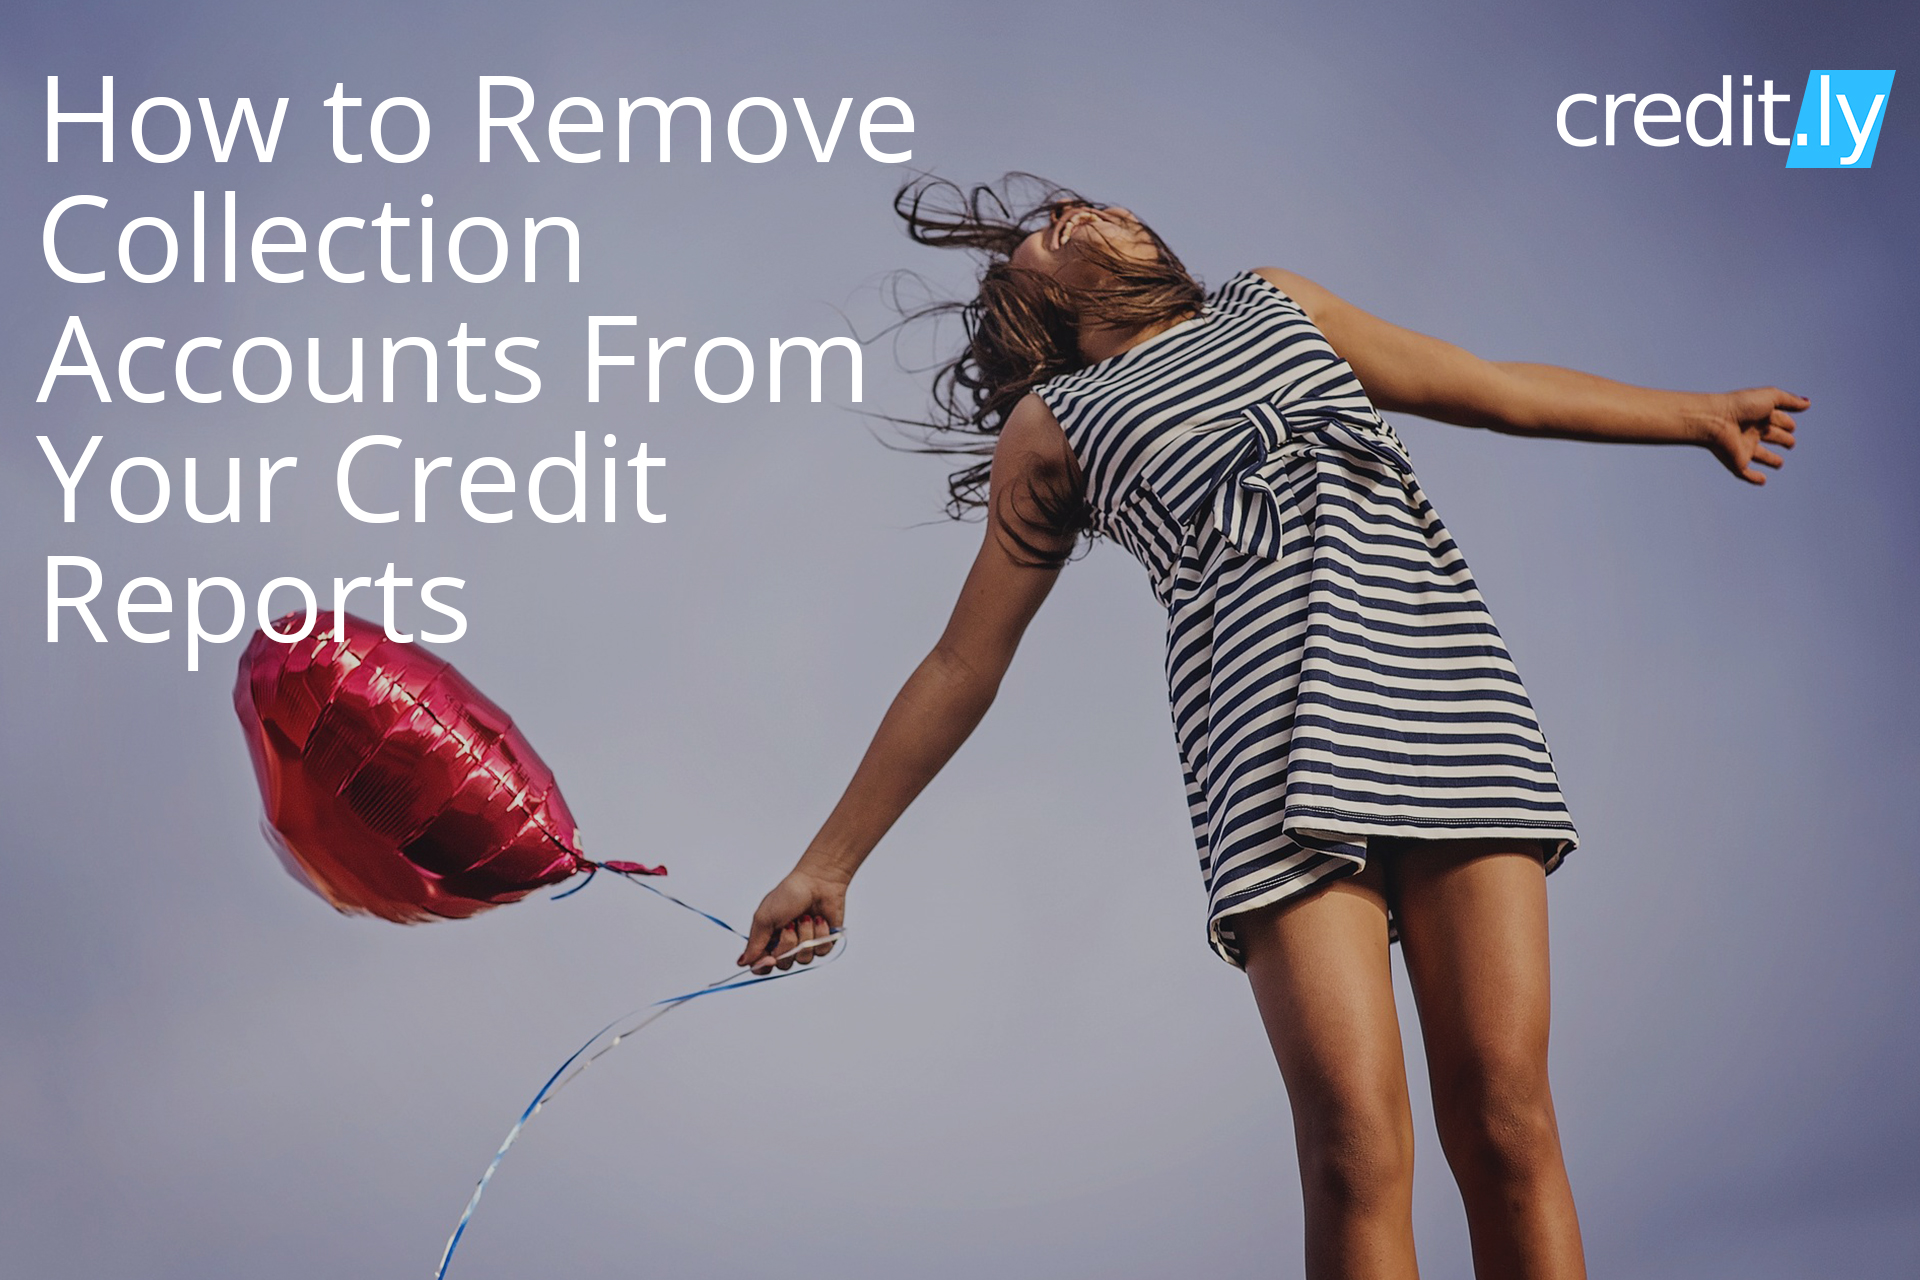 Credit.ly - Free Credit Checks Online - How to Remove Collection Accounts From Your Credit Reportsdit-reports/